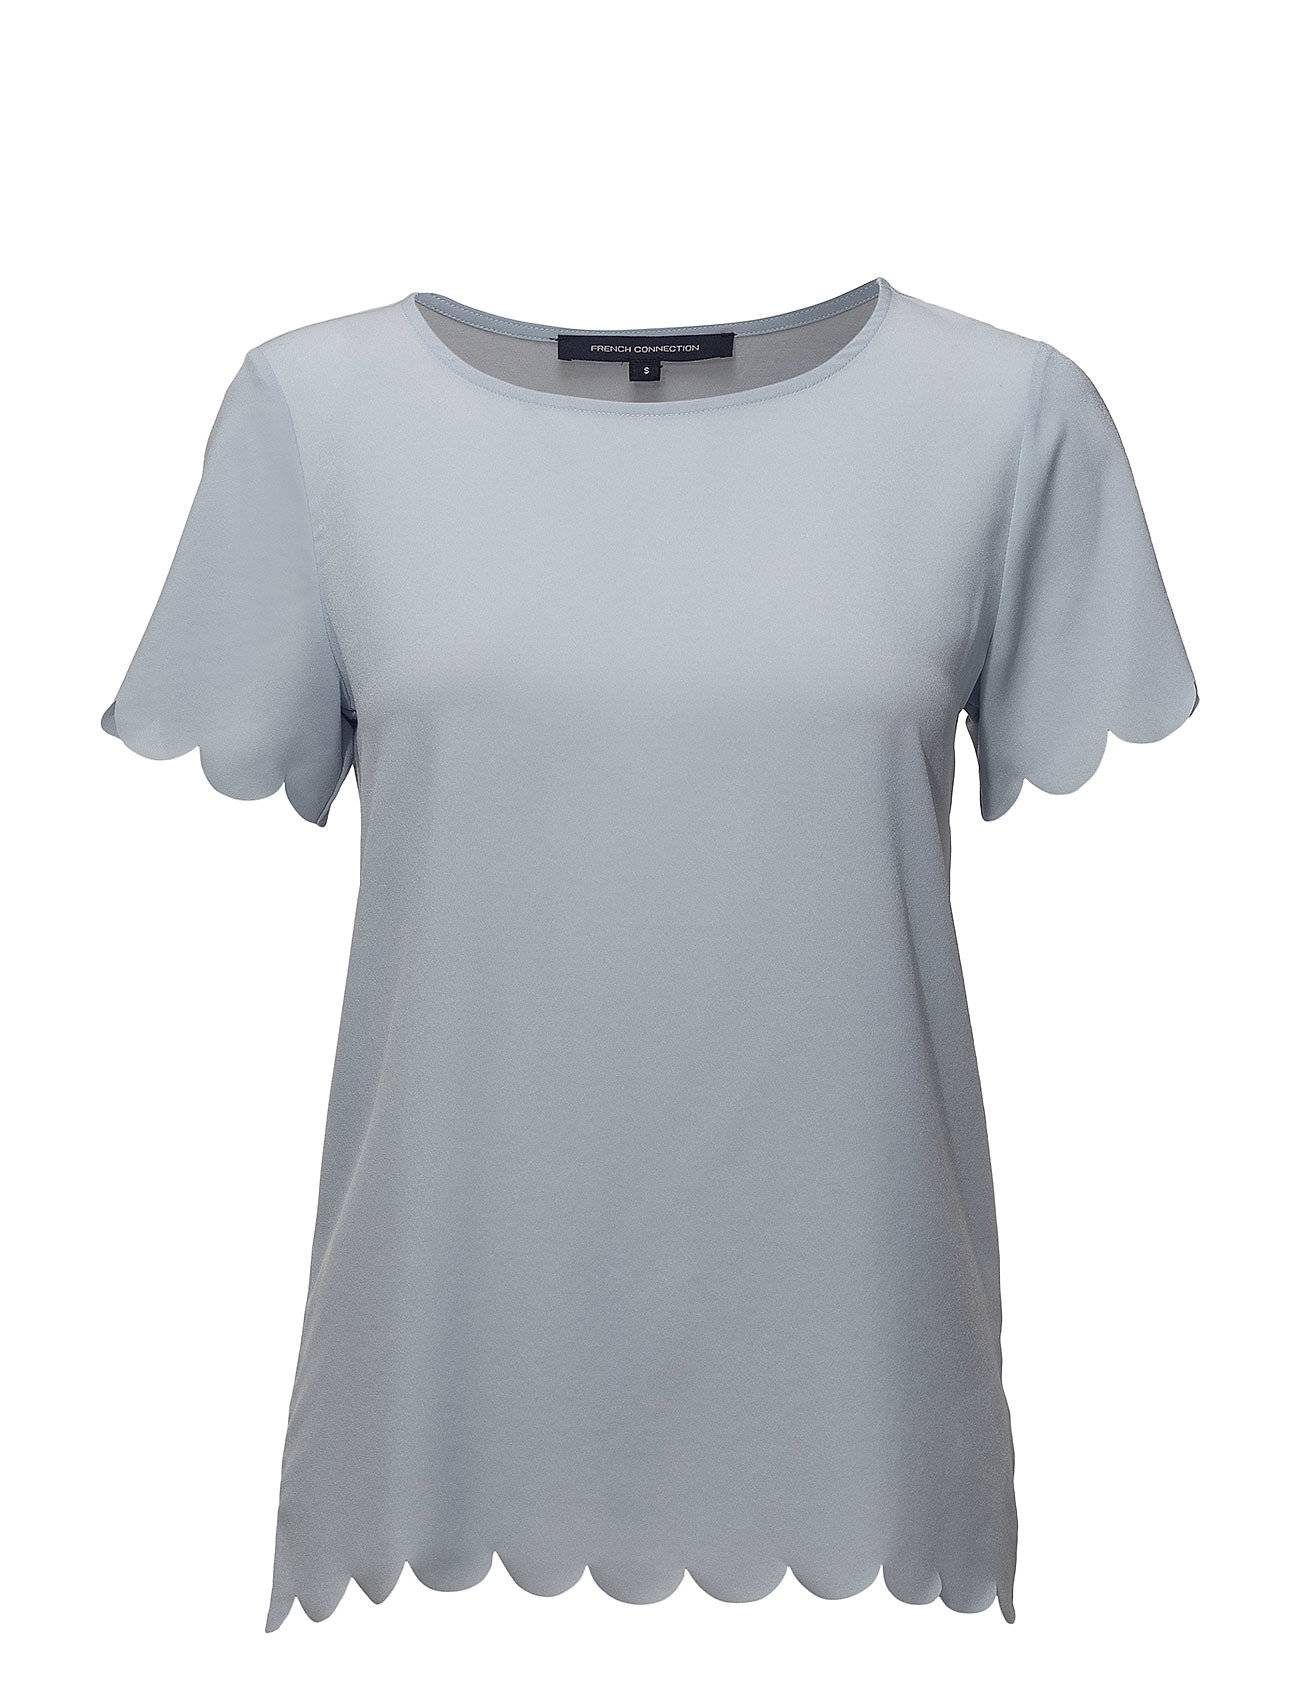 French Connection Classic Crepe Lght Scallop Tee